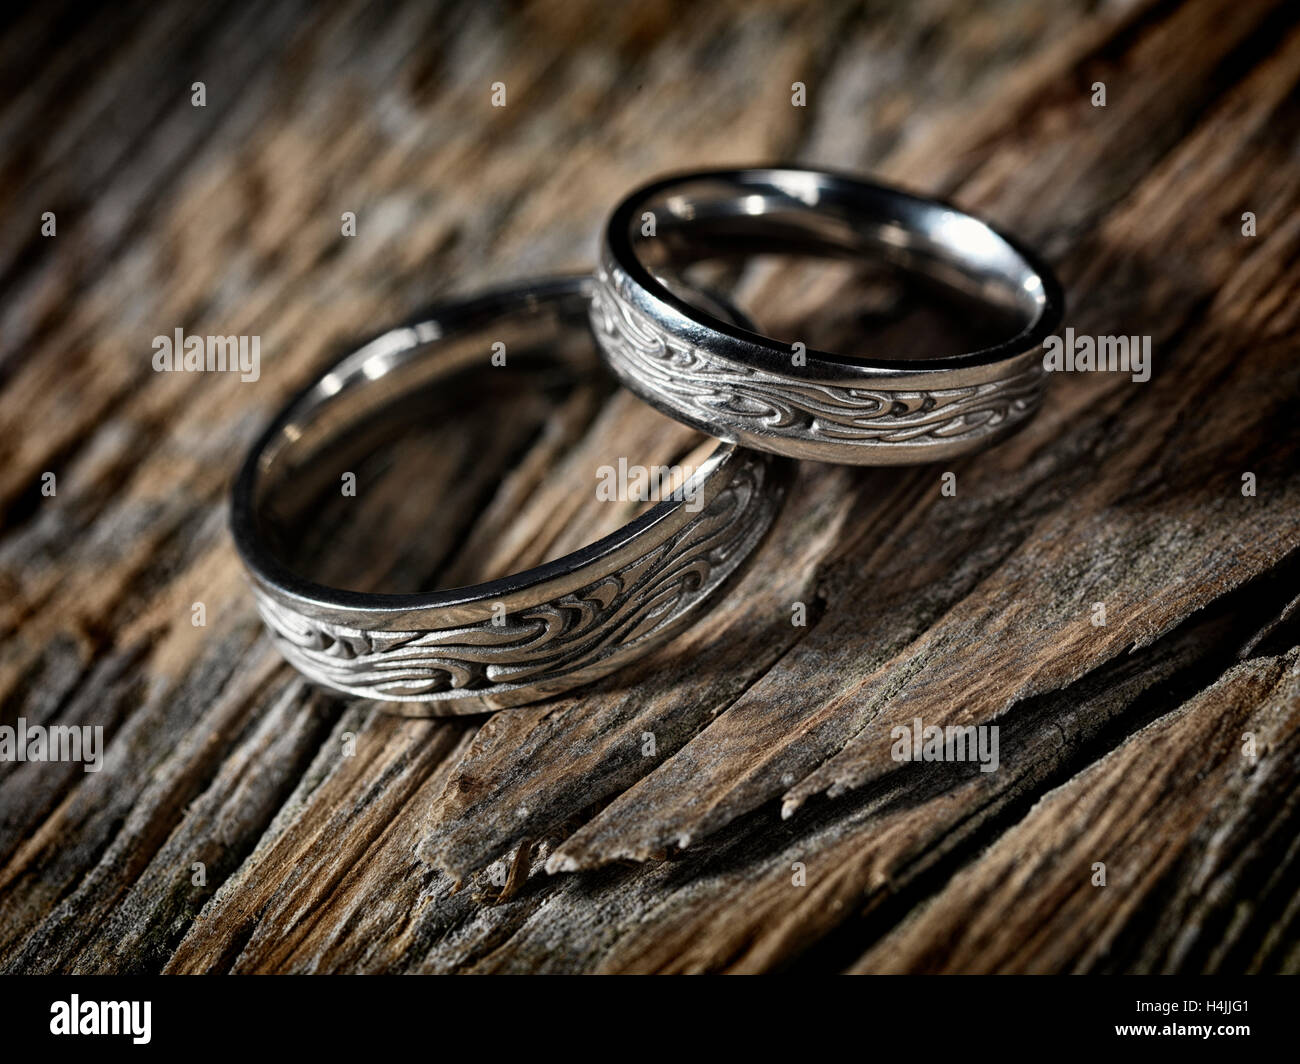 Download this stock image: Two white gold wedding rings with Celtic design on rustic wood background - H4JJG1 from Alamy